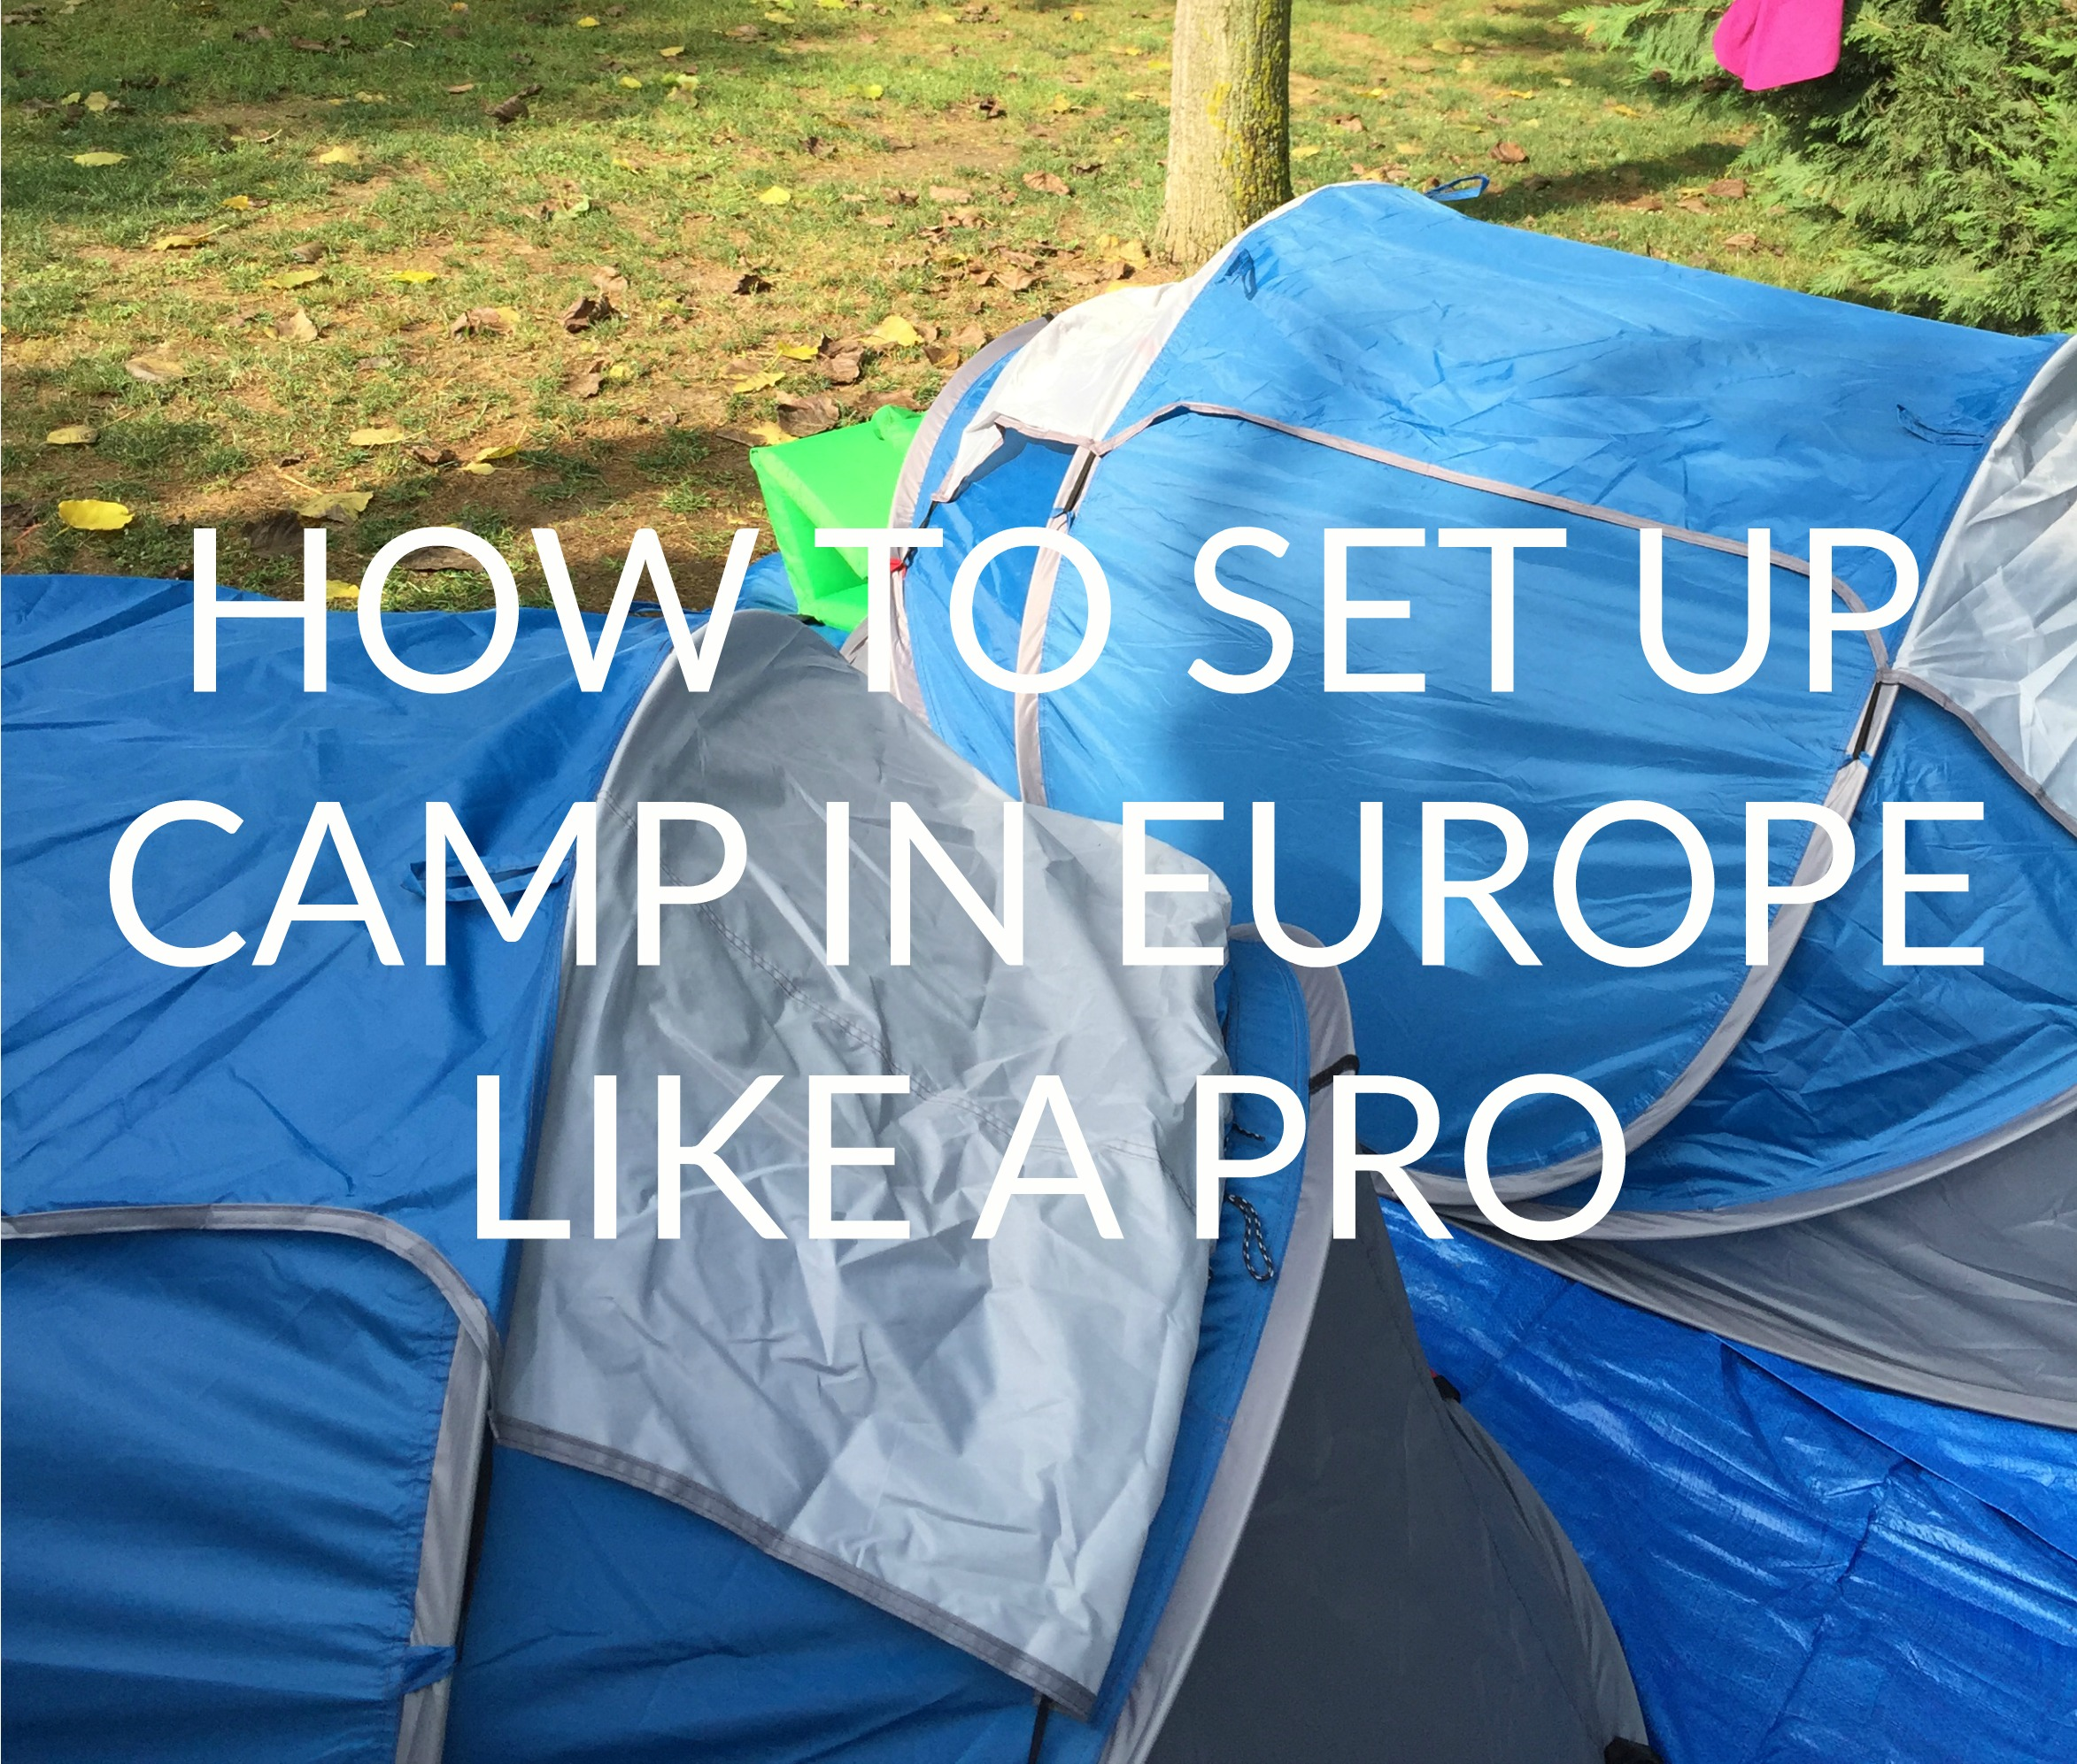 Camp in Europe